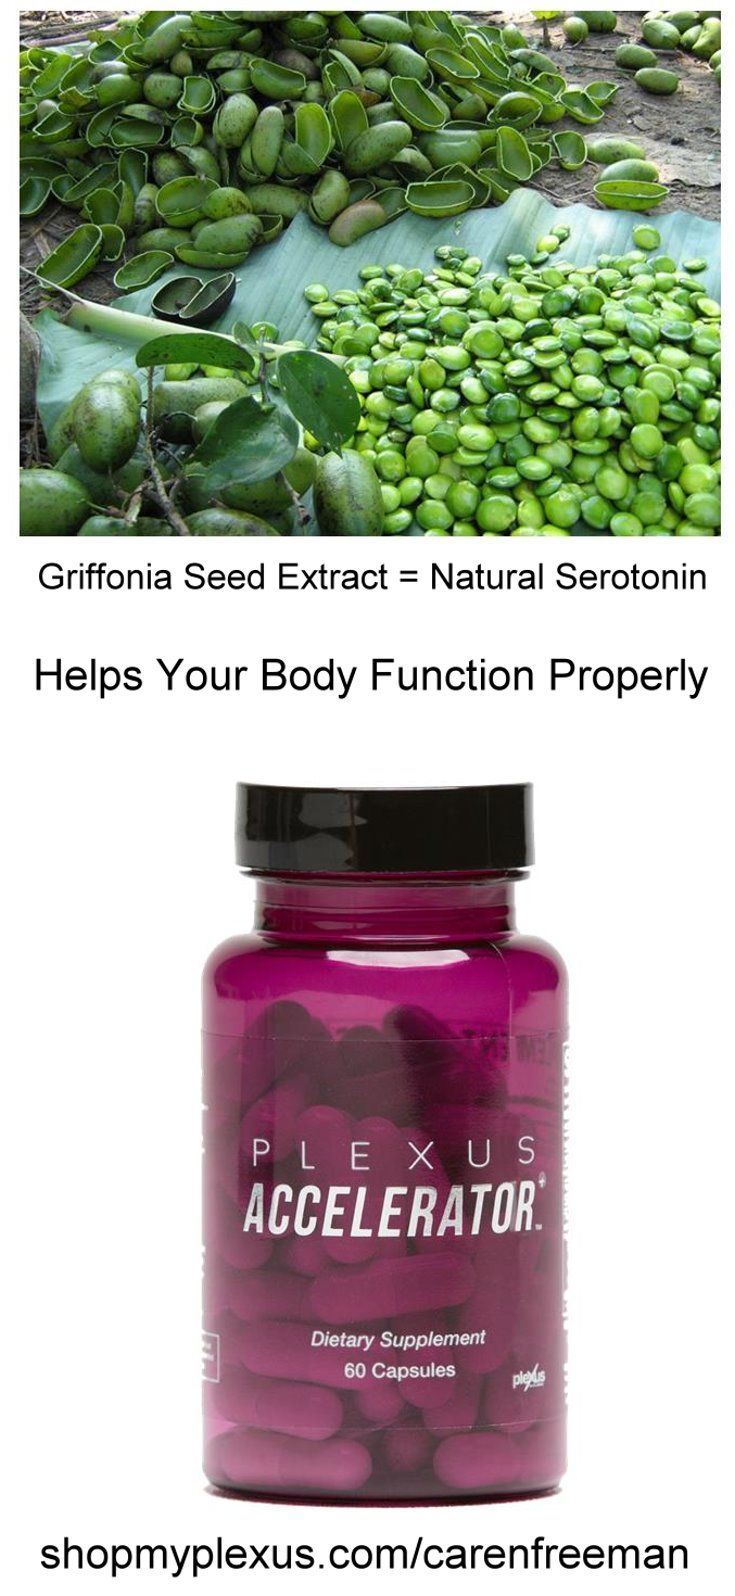 Increase your serotonin levels using Plexus Accelerator that contains Griffonia seed extract, or 5-HTP. Used in conjunction with the Plexus Tri-Plex (Slim, BioCleanse, and ProBio5), it can help your body function the way it is supposed to. Give it a try!